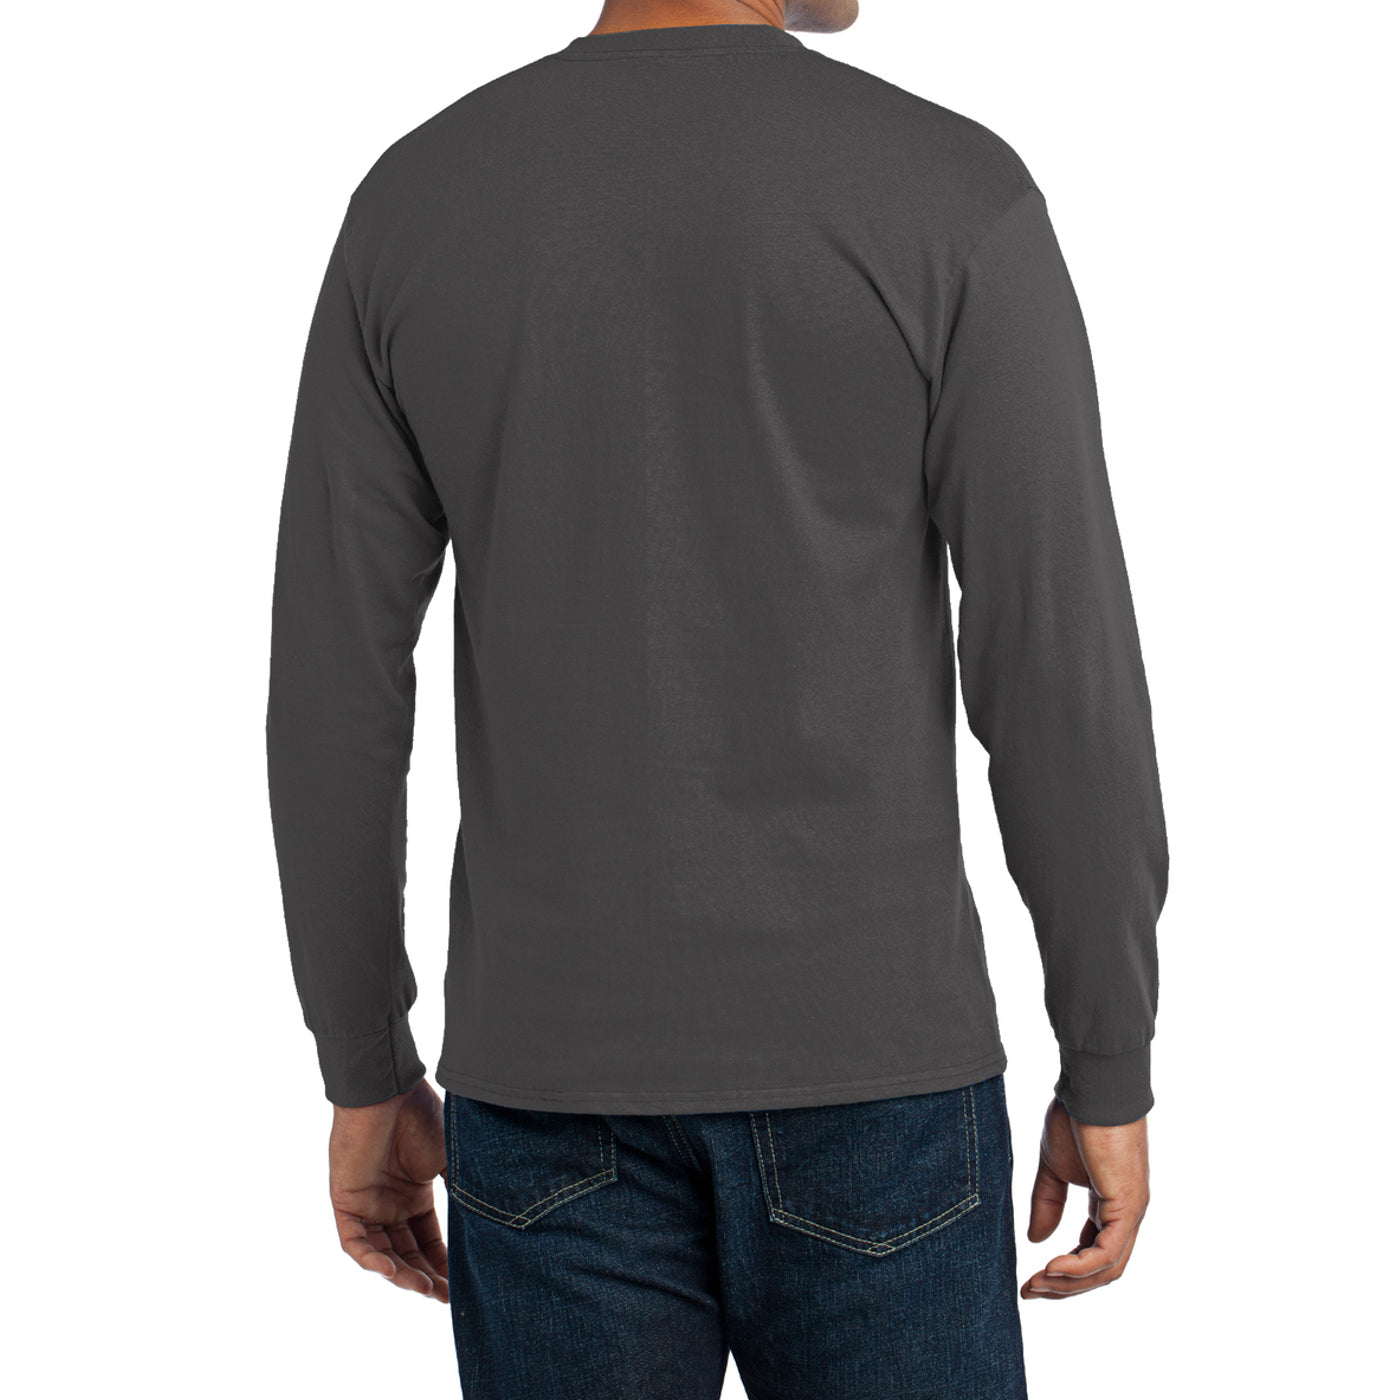 Men's Long Sleeve Core Blend Tee - Charcoal – Back